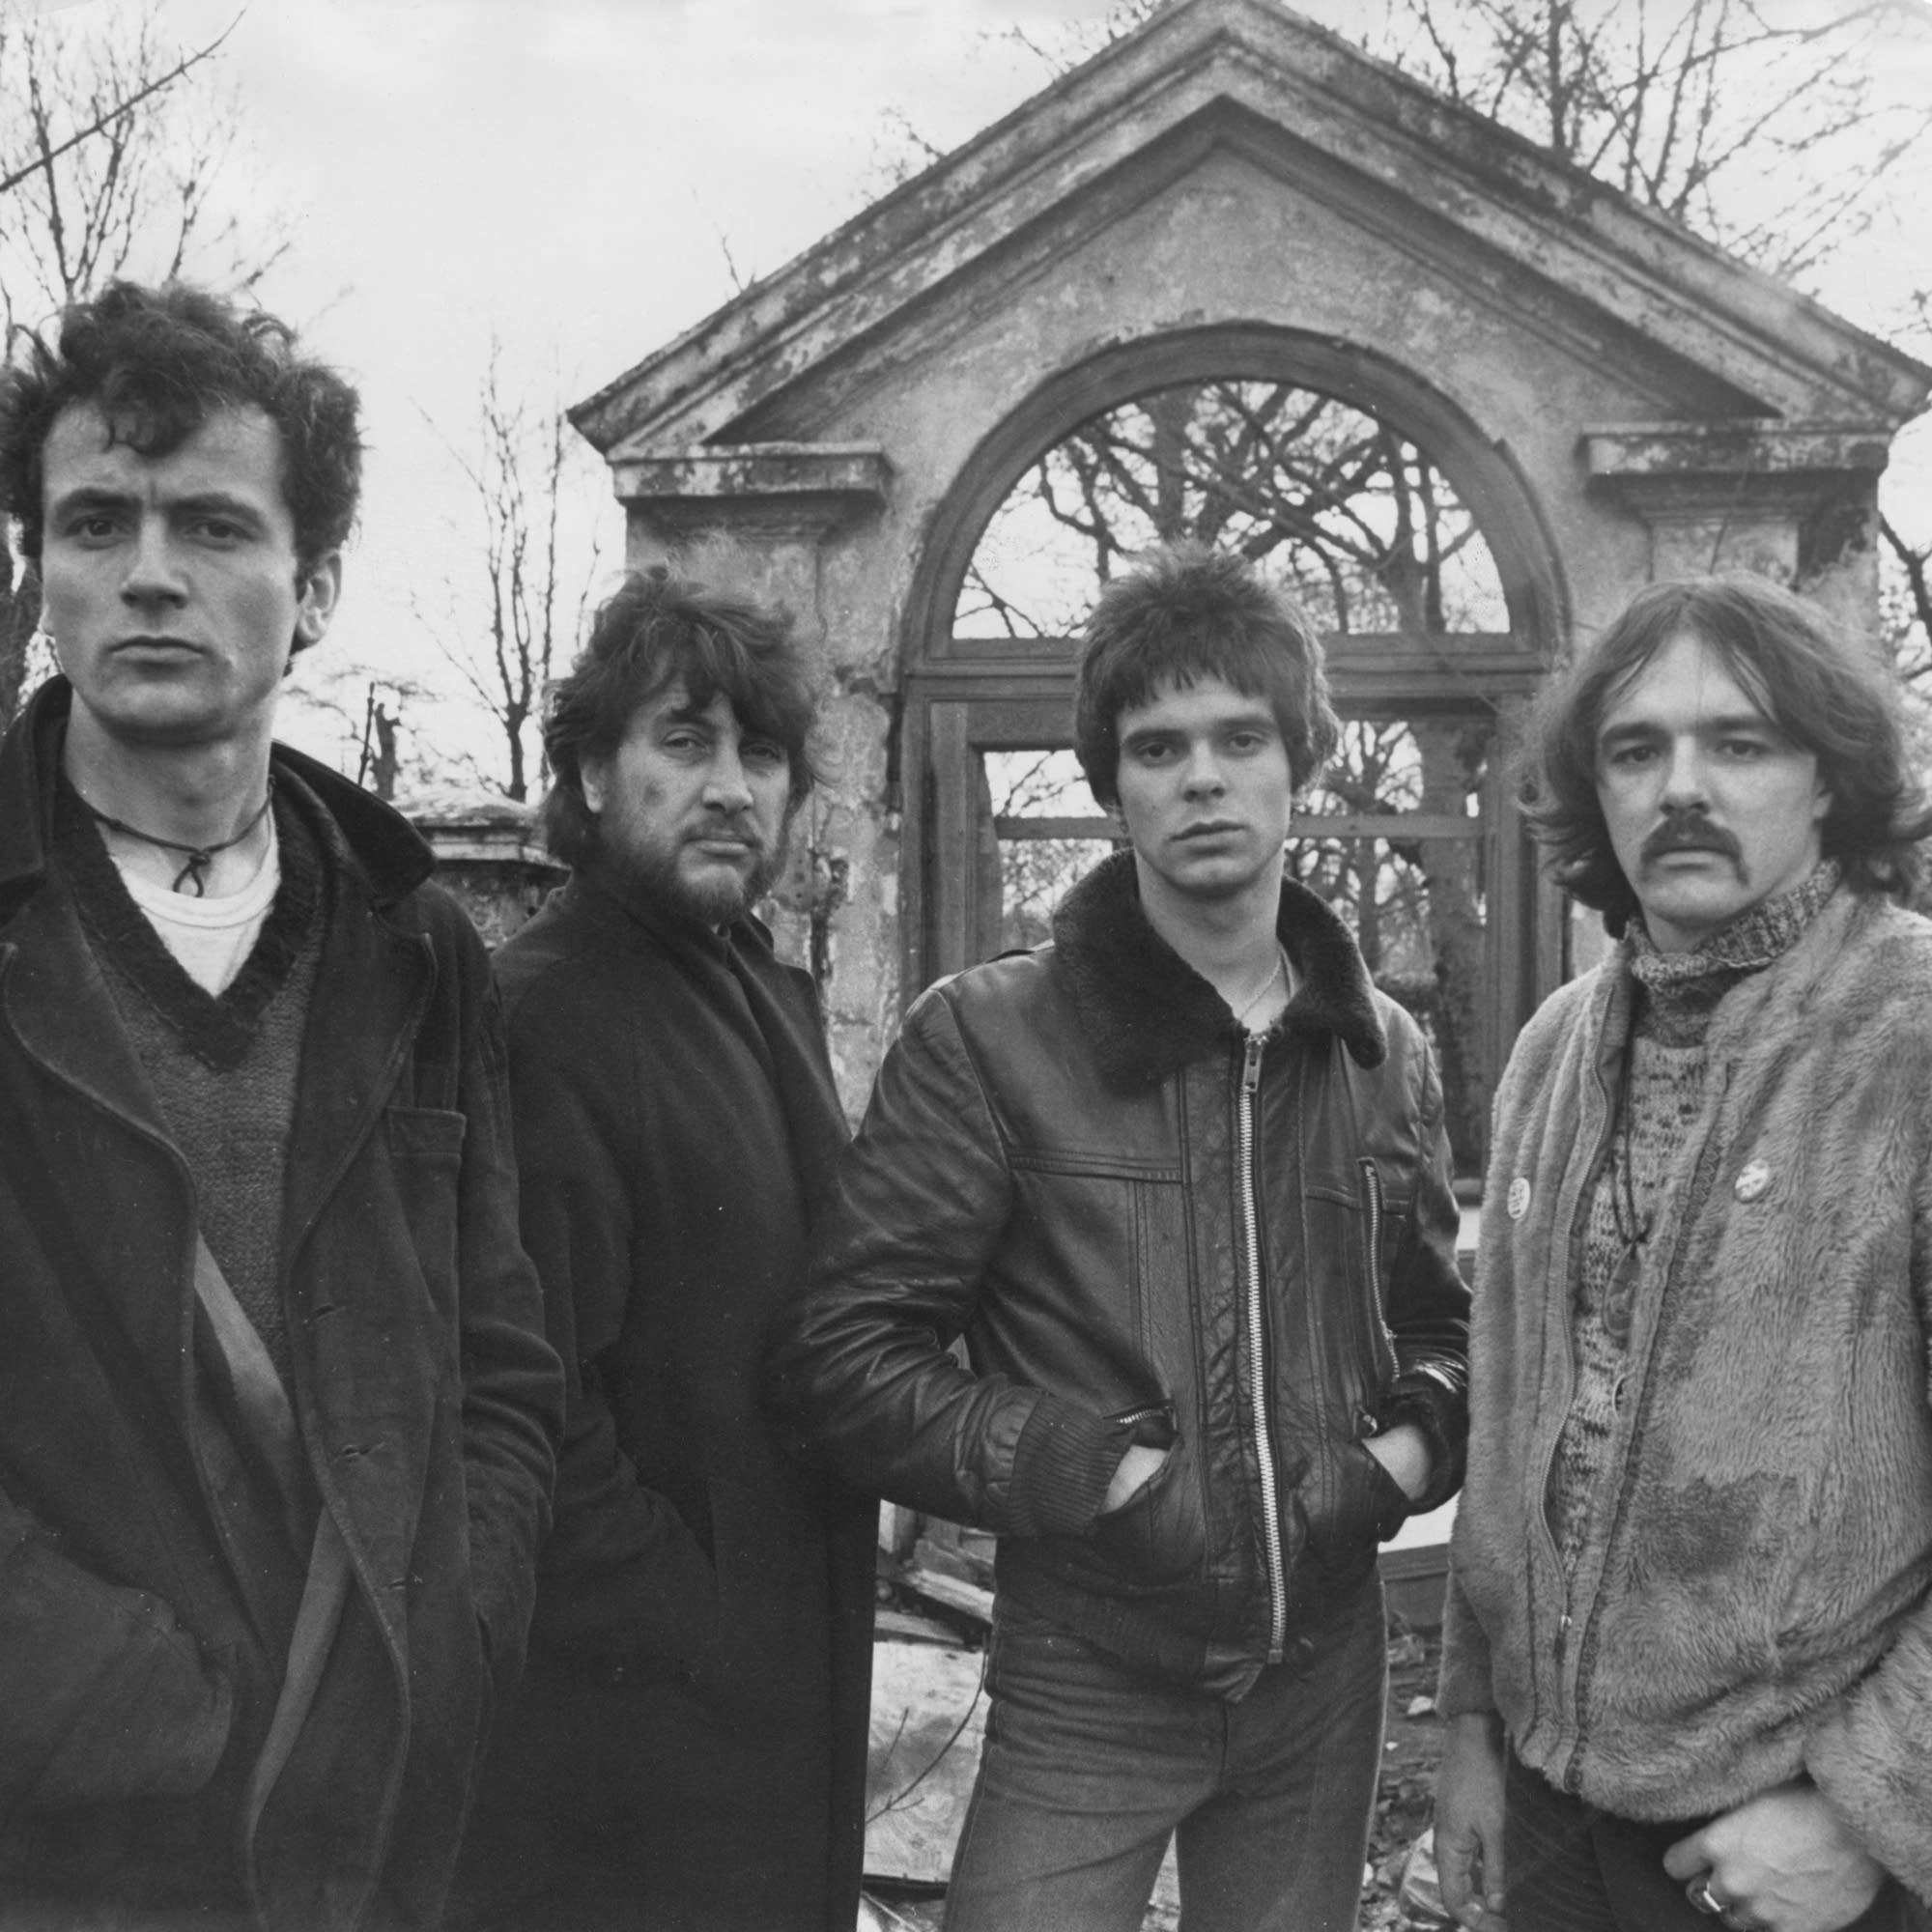 Dave Greenfield (far right) with the Stranglers in 1977.